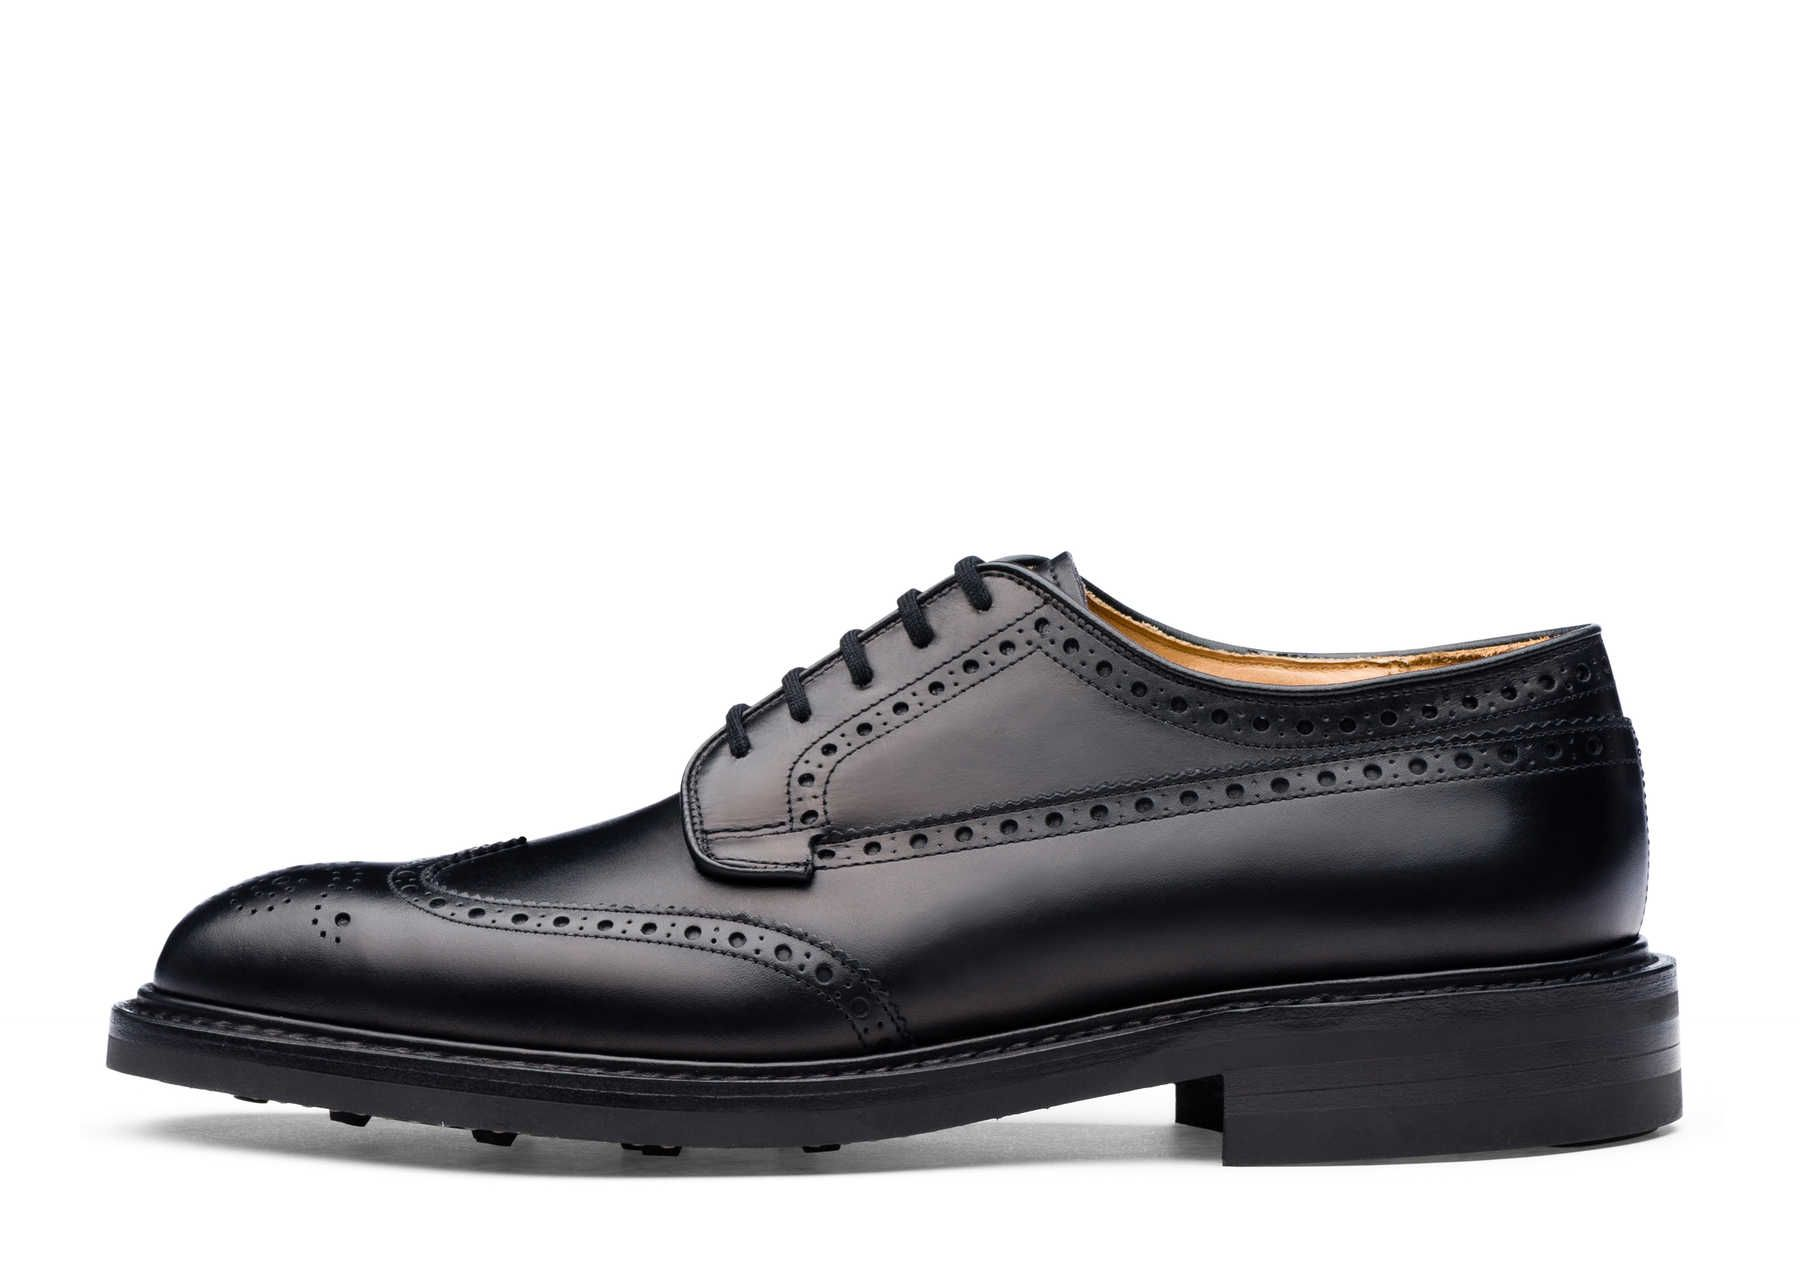 most comforter leatherecco shoes outlet seller calgaryecco p calgary mens for biom leather women moc dress ecco biomoutlet comfortable cow classic black